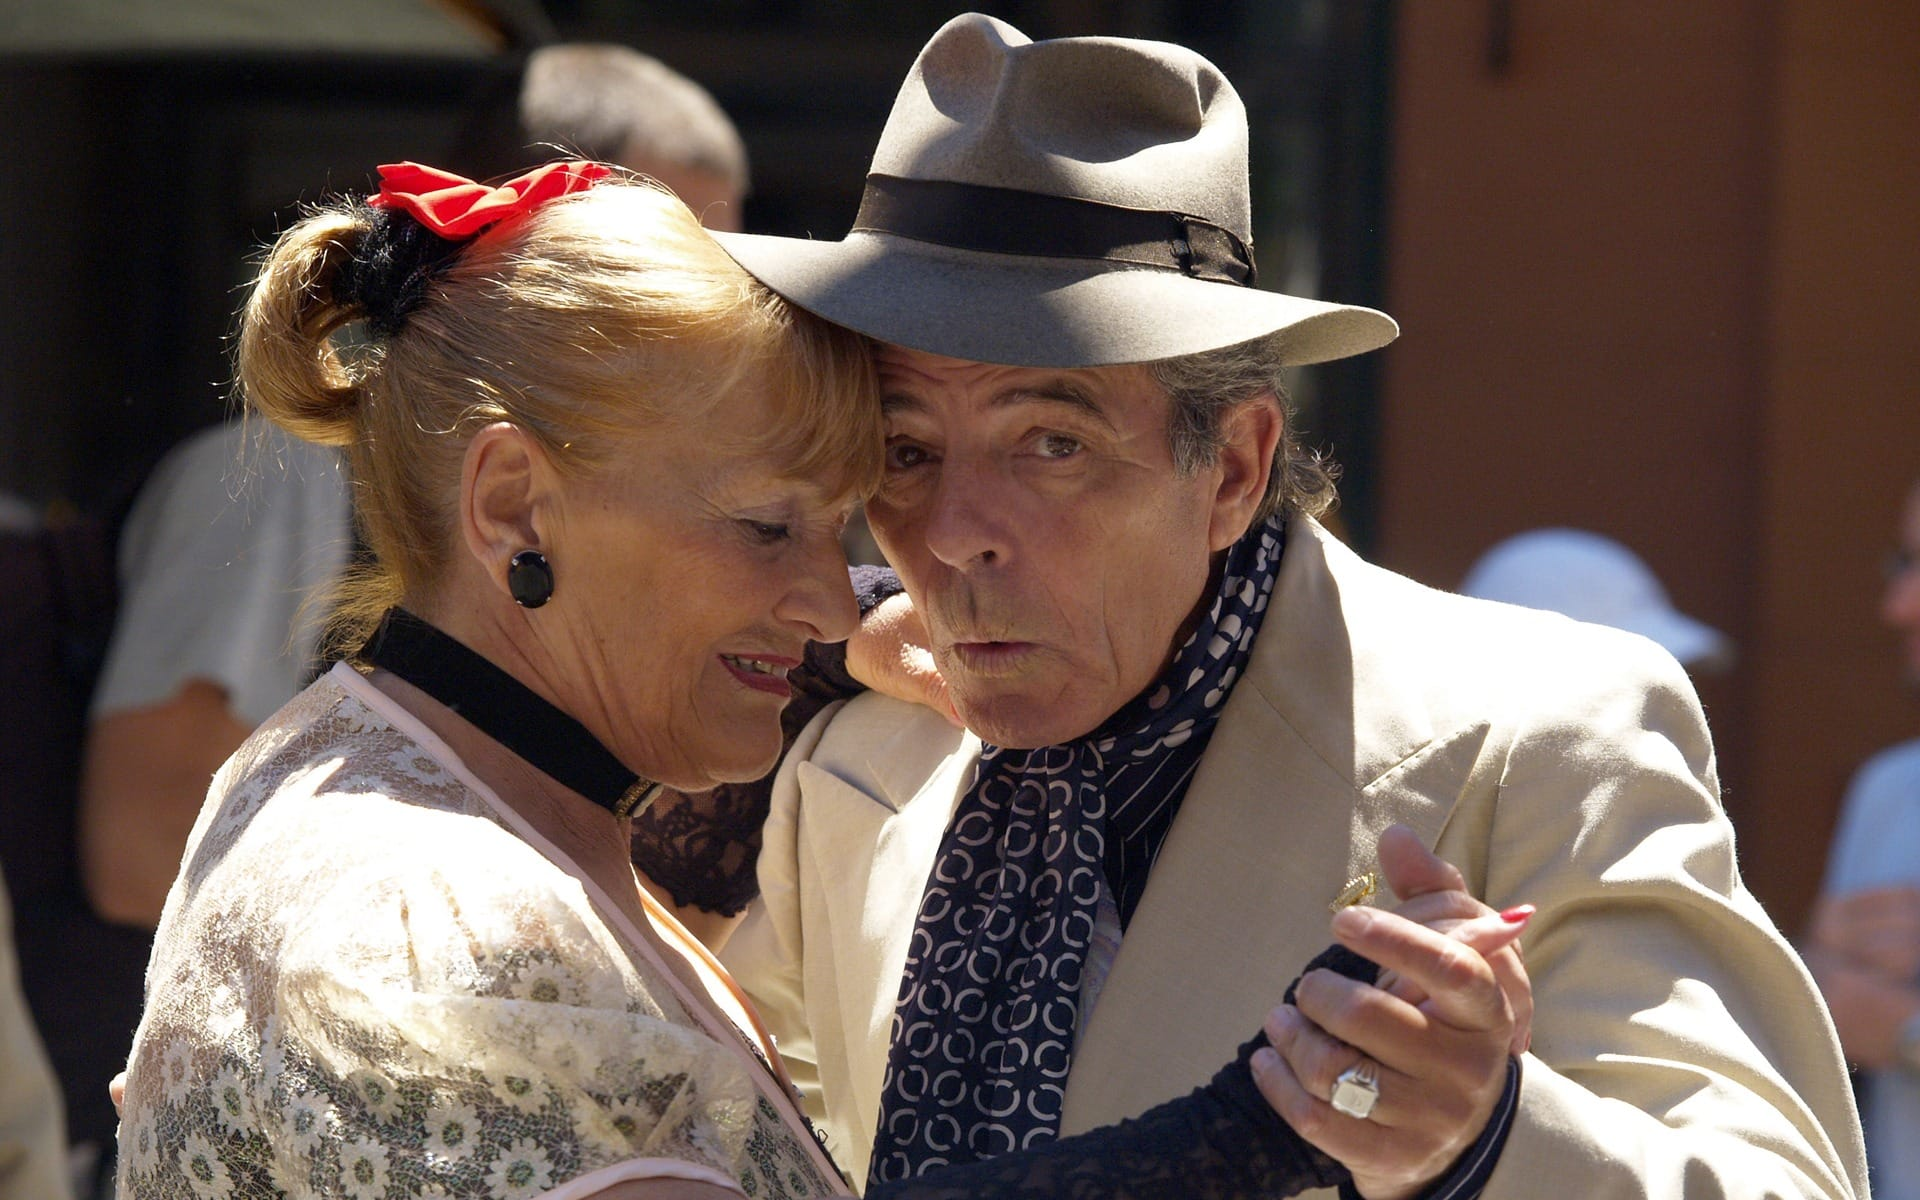 medicare medicaid together dual eligibles | jaunty old couple dancing